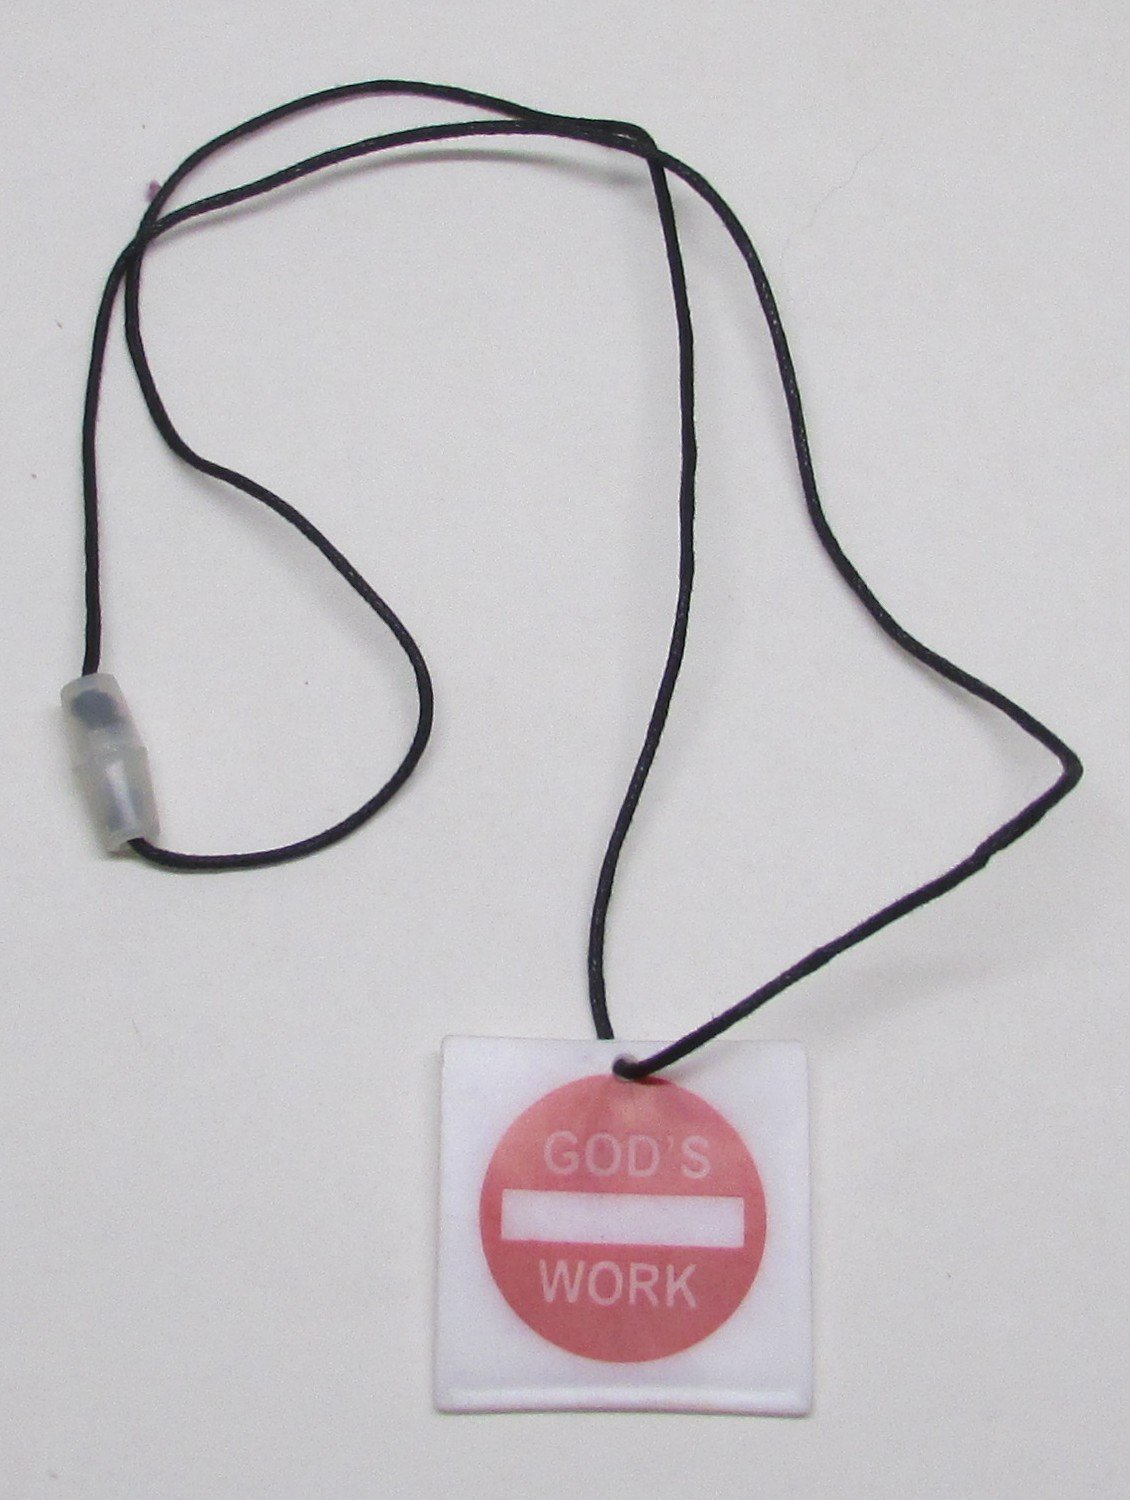 GODs WORK Street Sign Unlatchable NECKLACE NEW